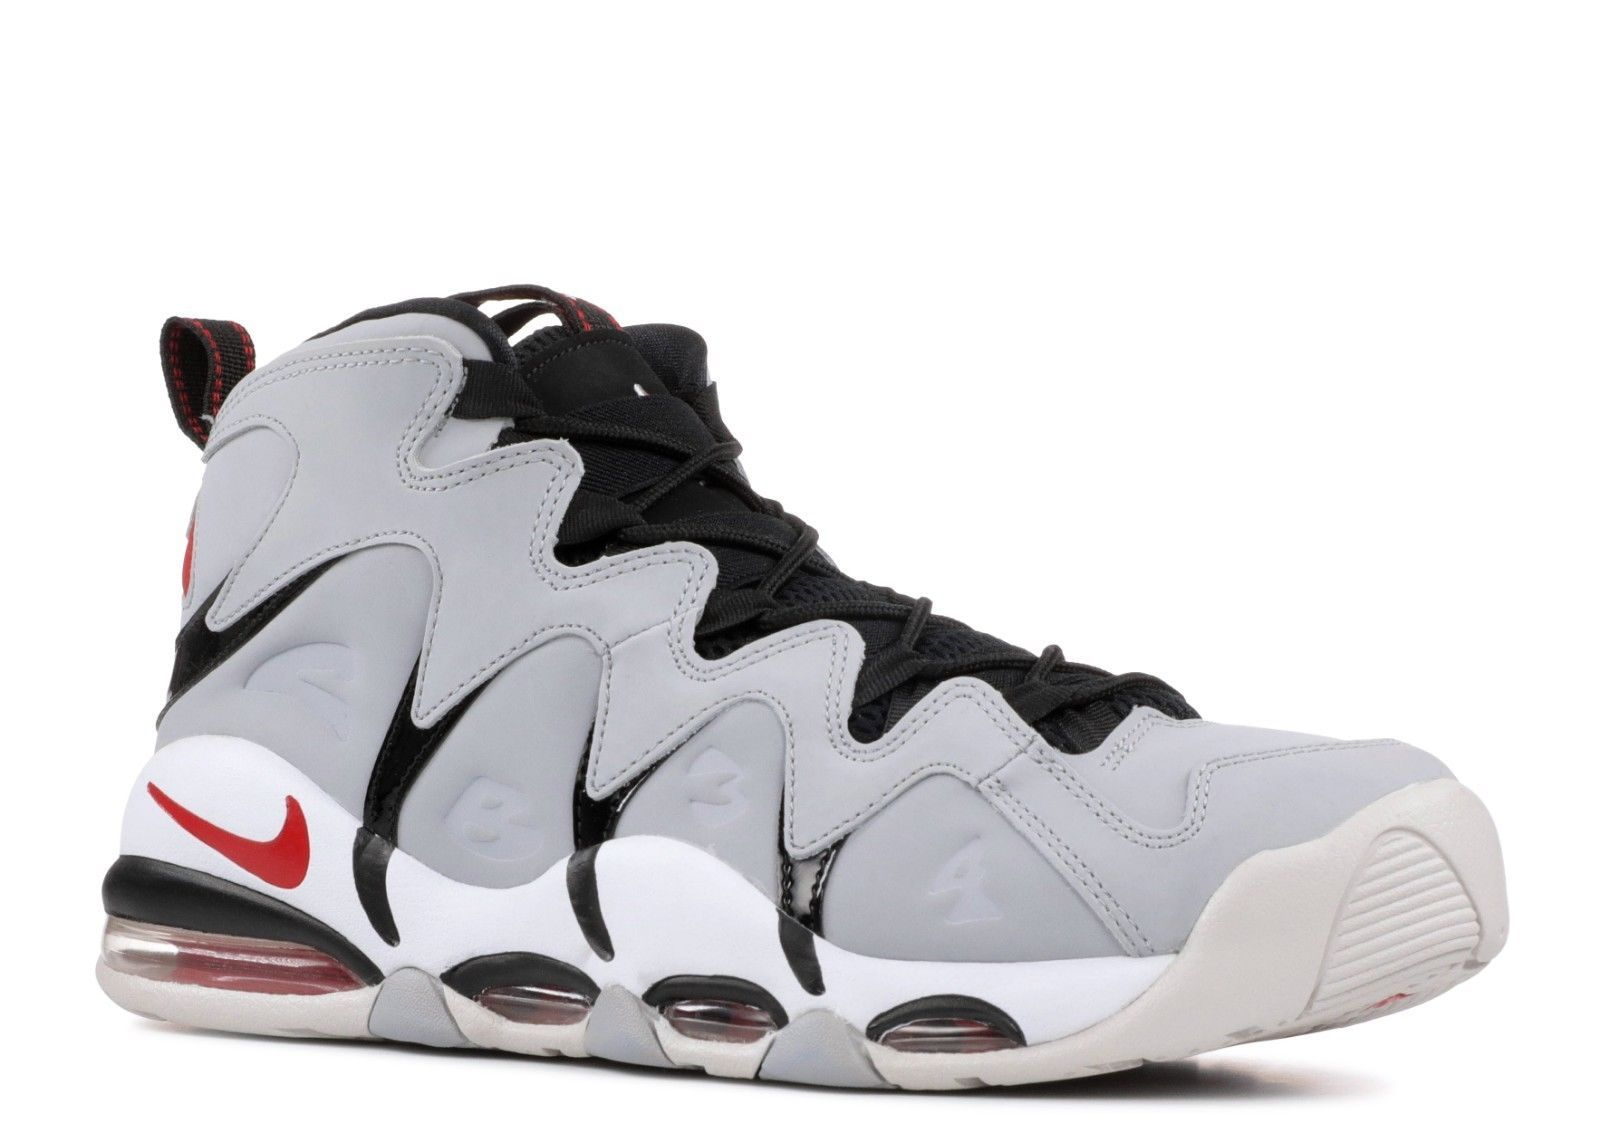 uk availability 4d06a 098d4 Nike Air Max CB34 Men s Basketball Shoes and 43 similar items. 57